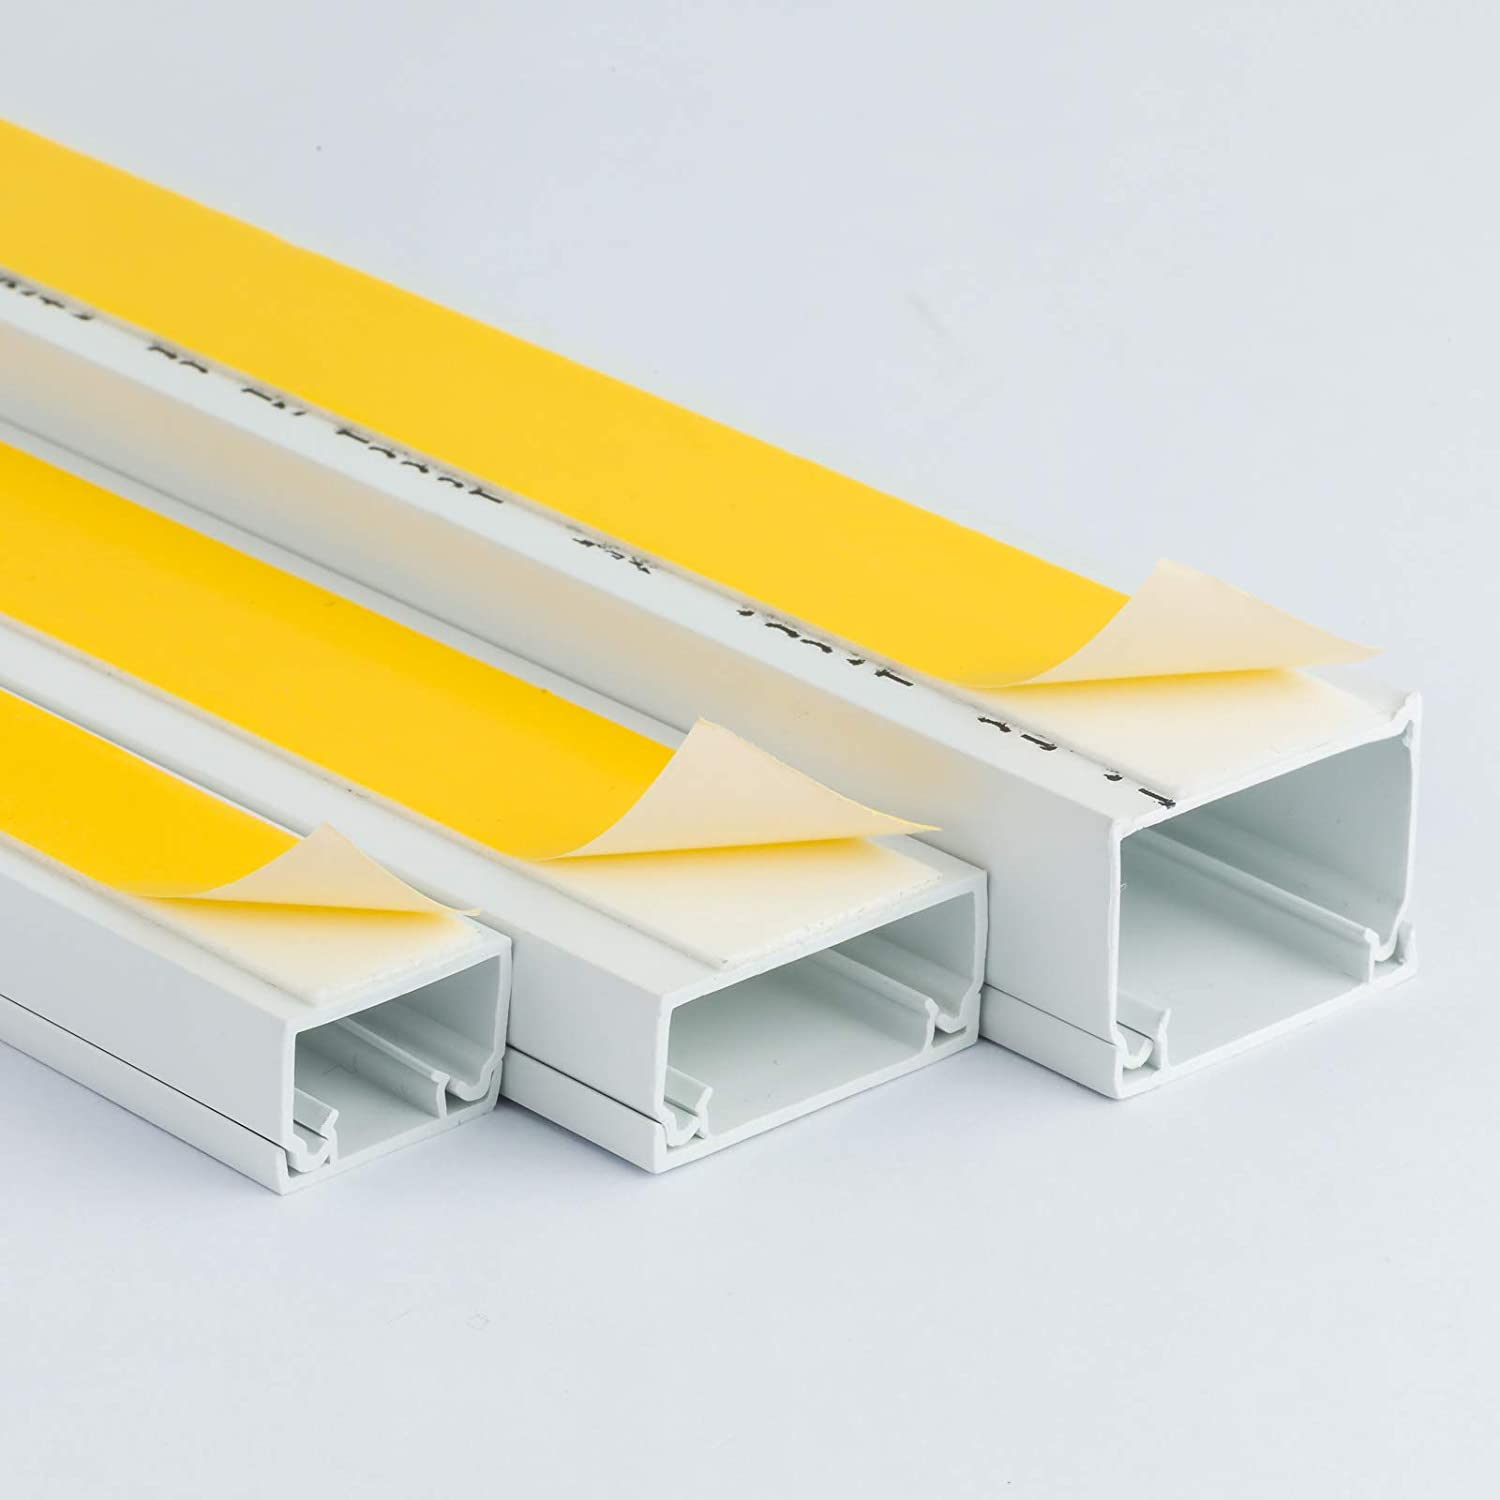 16x16 38x16 38x25mm 16x10 White Self Adhesive Pvc Trunking Cable Wire Tidy Plastic Electrical Conduit Mini Trunk 16x10mm 2x 1m Length 25x16 Wire4u Size Variations Including 10x8